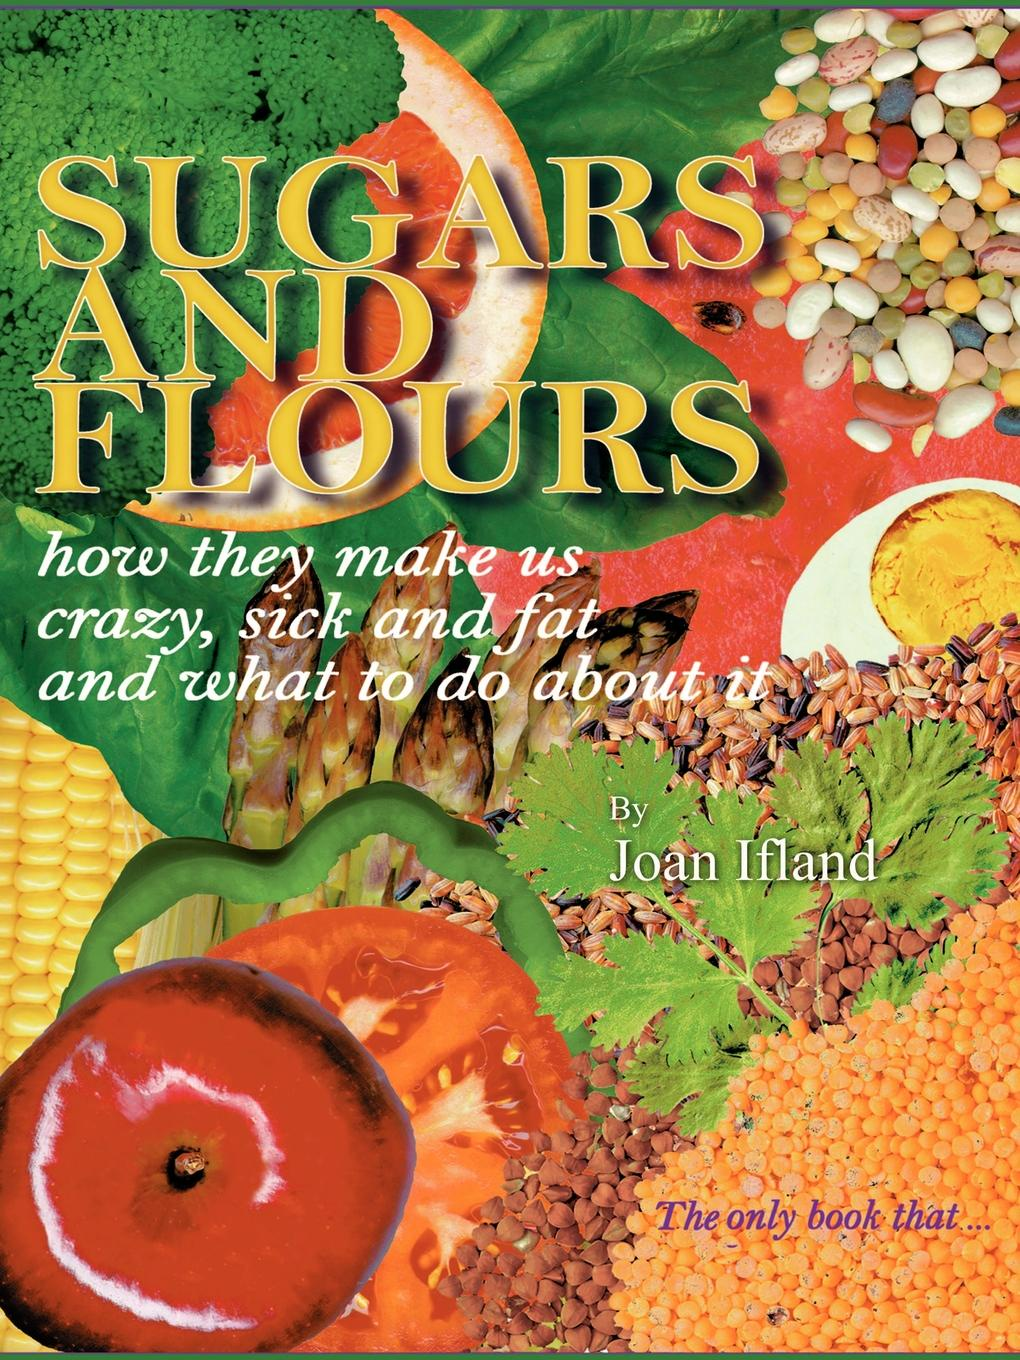 Joan Ifland Sugars and Flours. How They Make Us Crazy, Sick, and Fat and What to Do about It oxidation of sugars